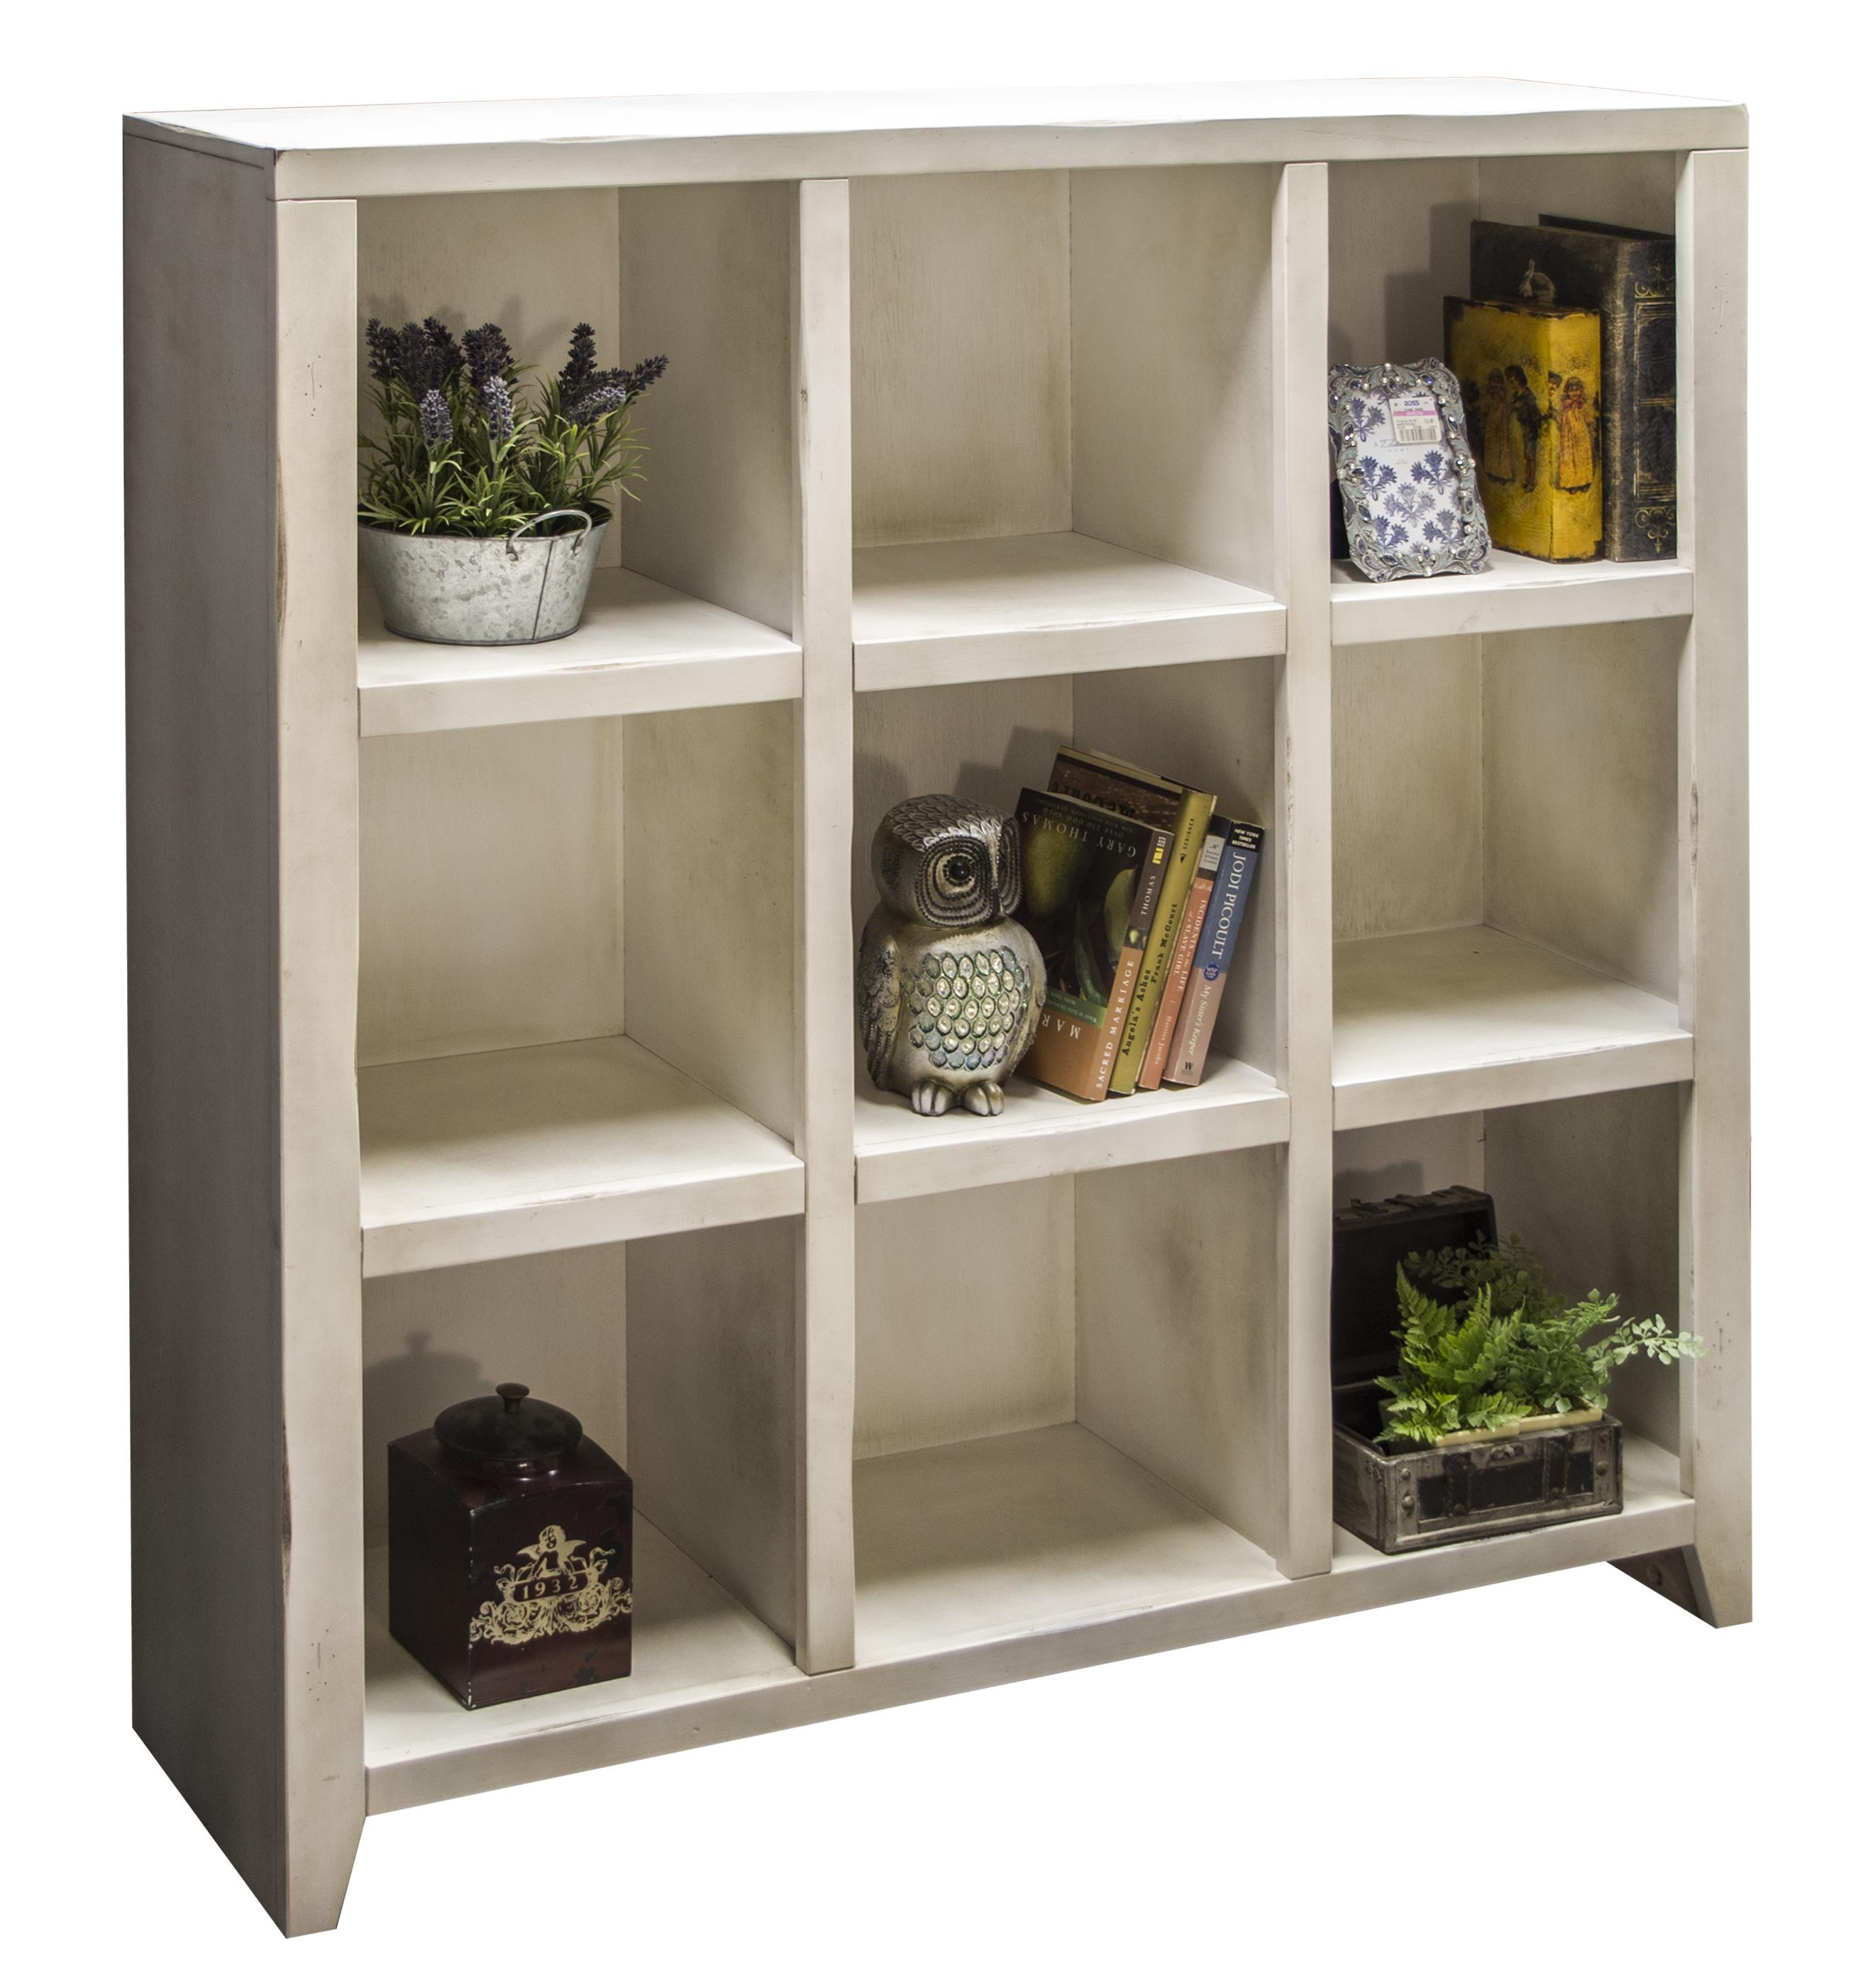 Legends Furniture Calistoga Collection Calistoga 9-Cubicle Bookcase - Item Number: CA6403-RWT